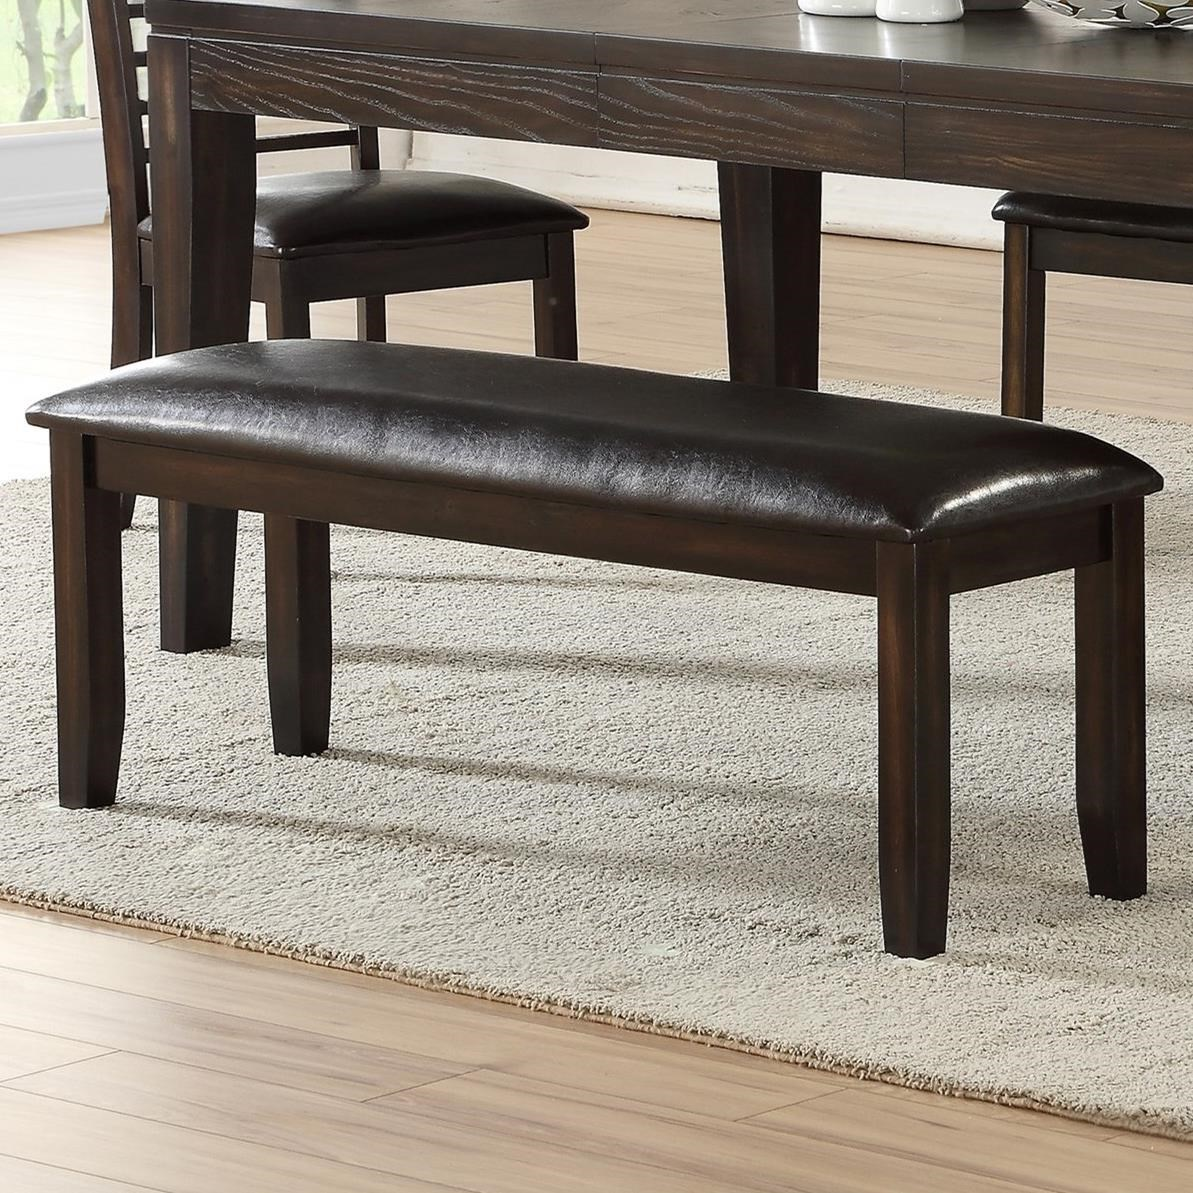 Dining Bench with PU Upholstered Seat